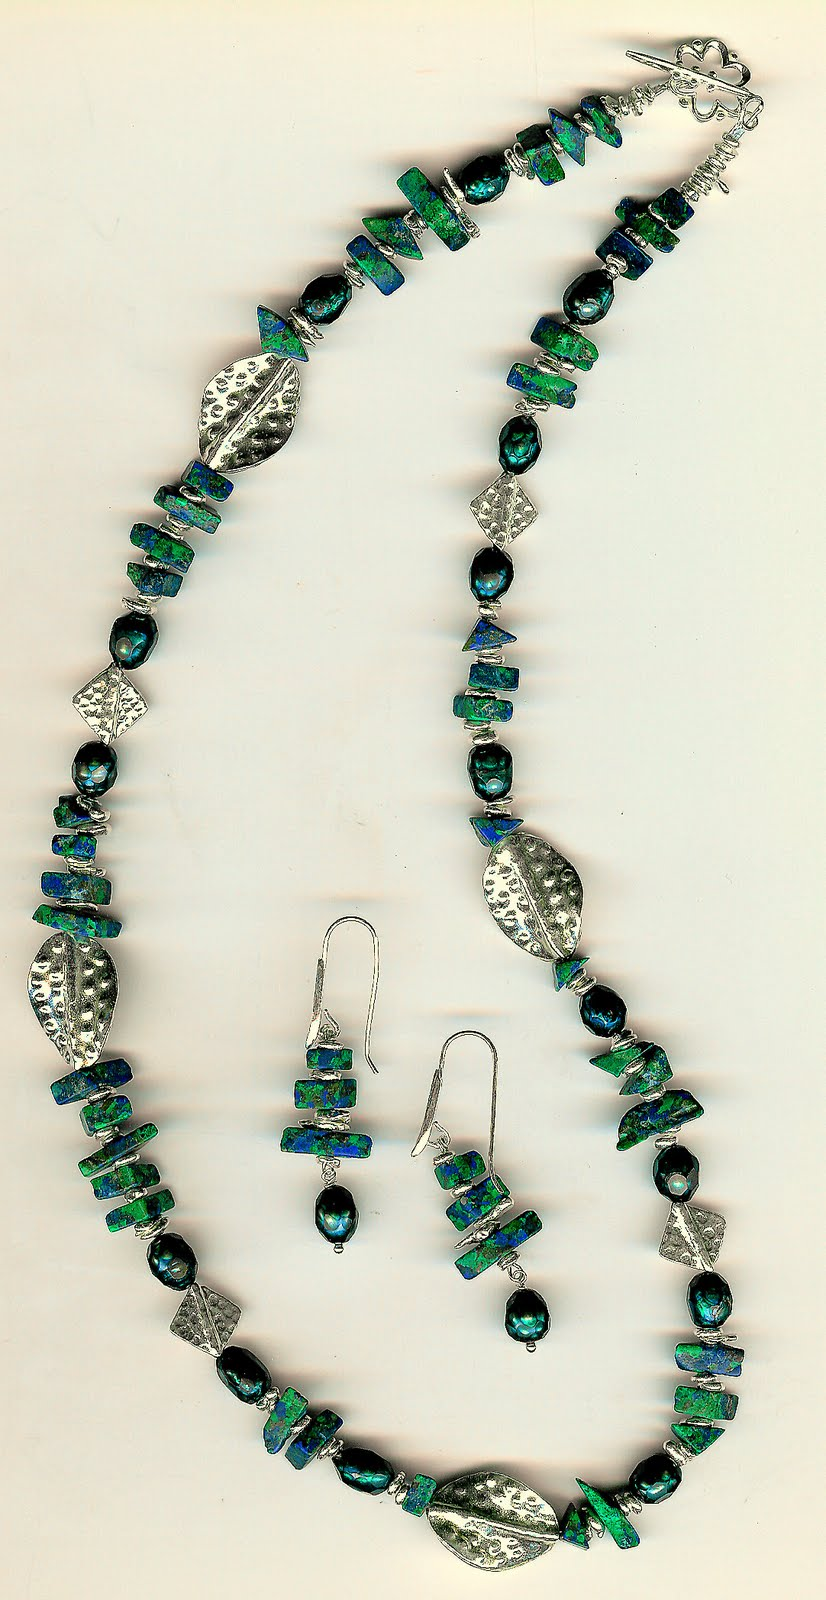 188. Lapis/Malachite with Faceted Pearls and Karen Hill Thai Sterling Silver + Earrings